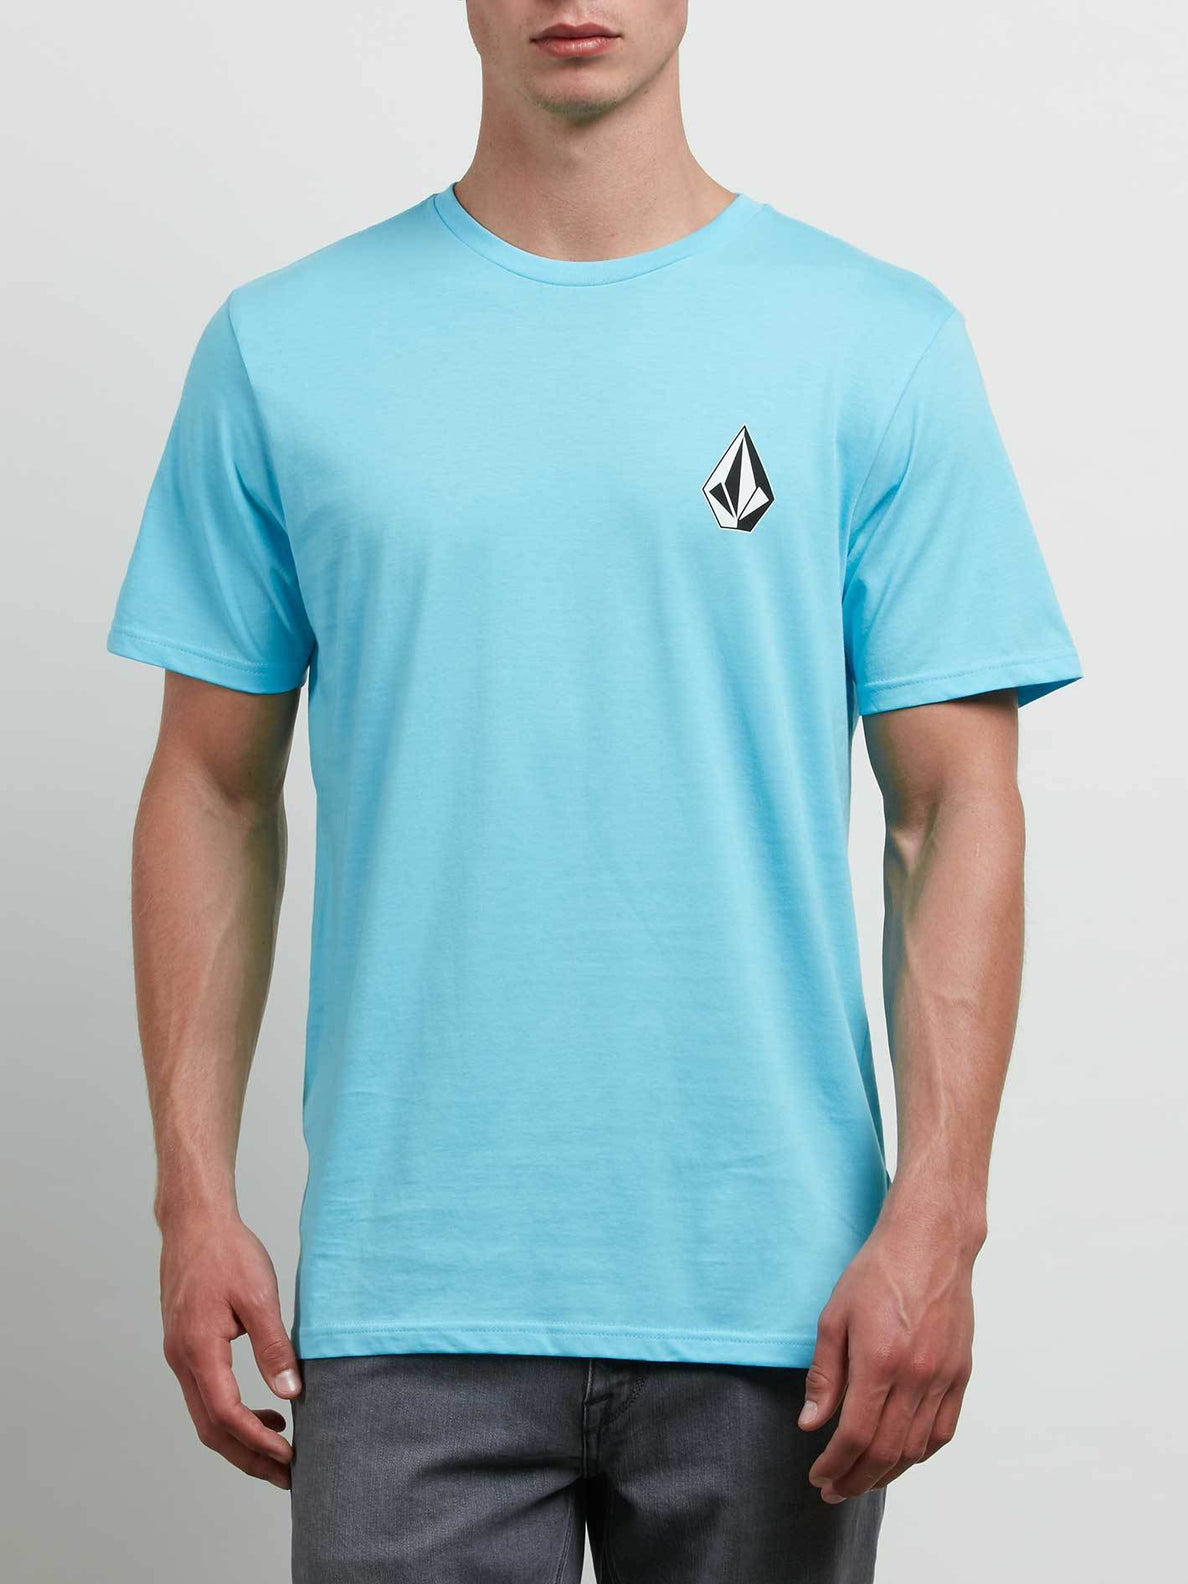 Deadly Stone Short Sleeve Tee In Aqua, Front View